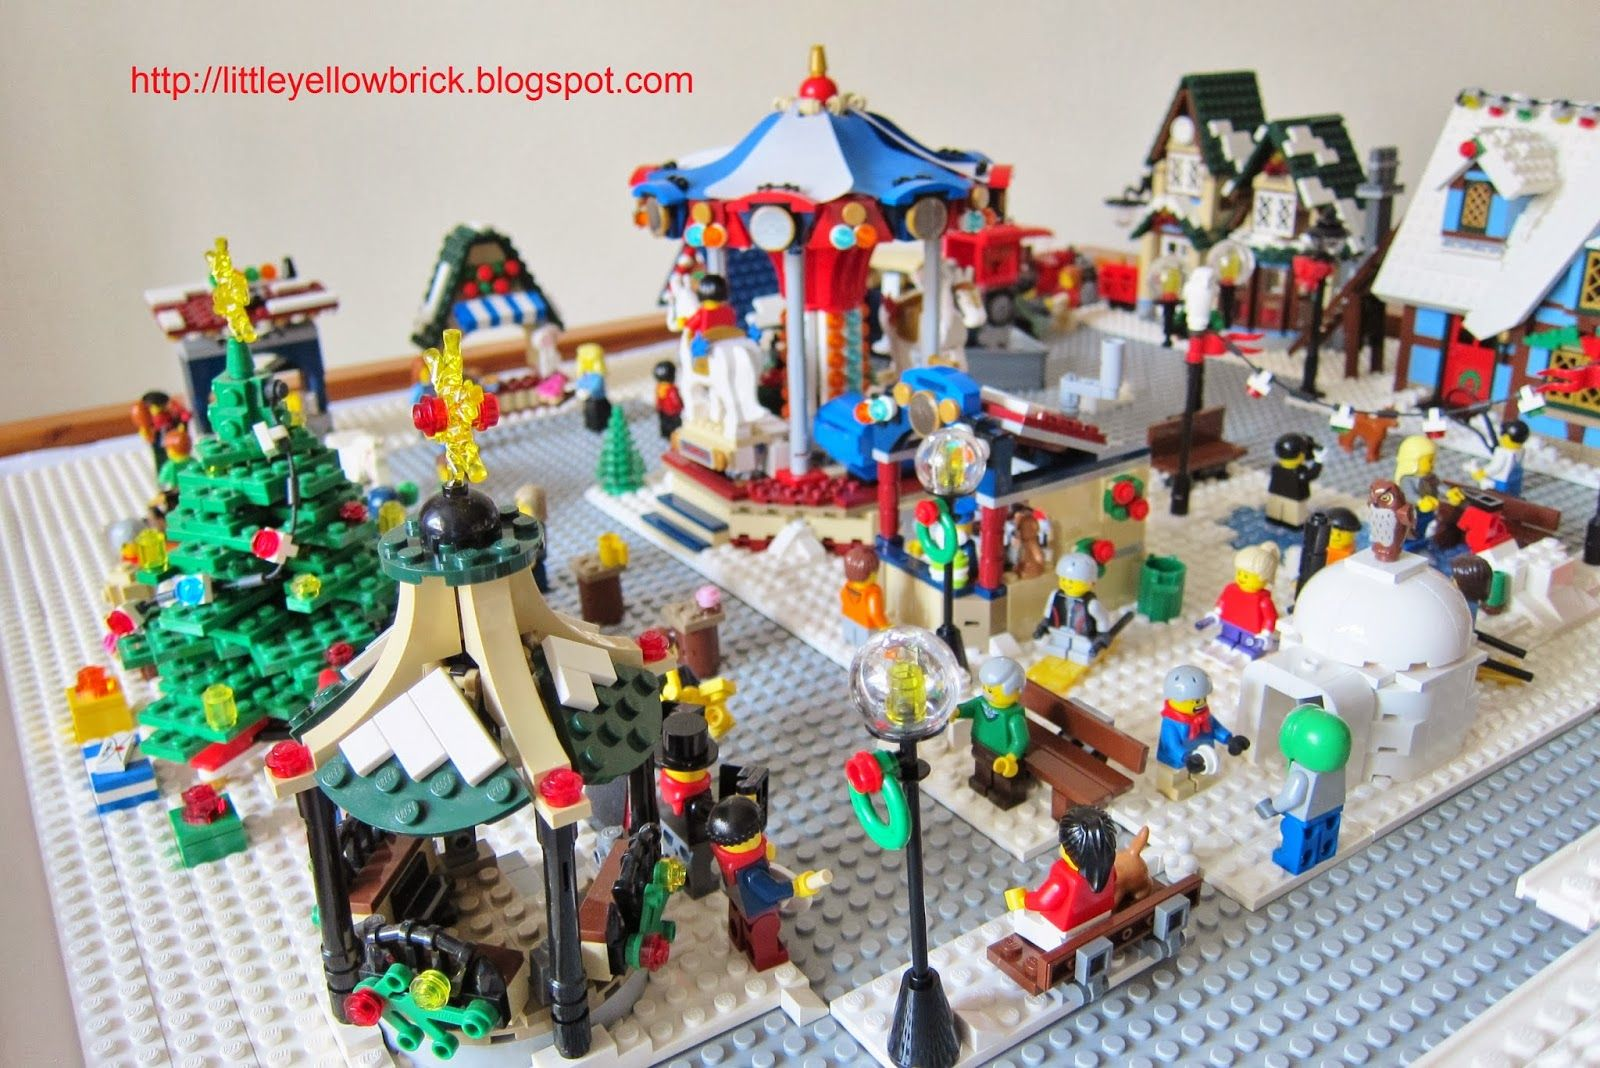 Pin lego 60032 city the lego summer wave in official images on - Little Yellow Brick A Lego Blog Our Lego Winter Village Town Moc 10199 Winter Village Toy Shop 10216 Winter Village Bakery 10222 Winter Vill